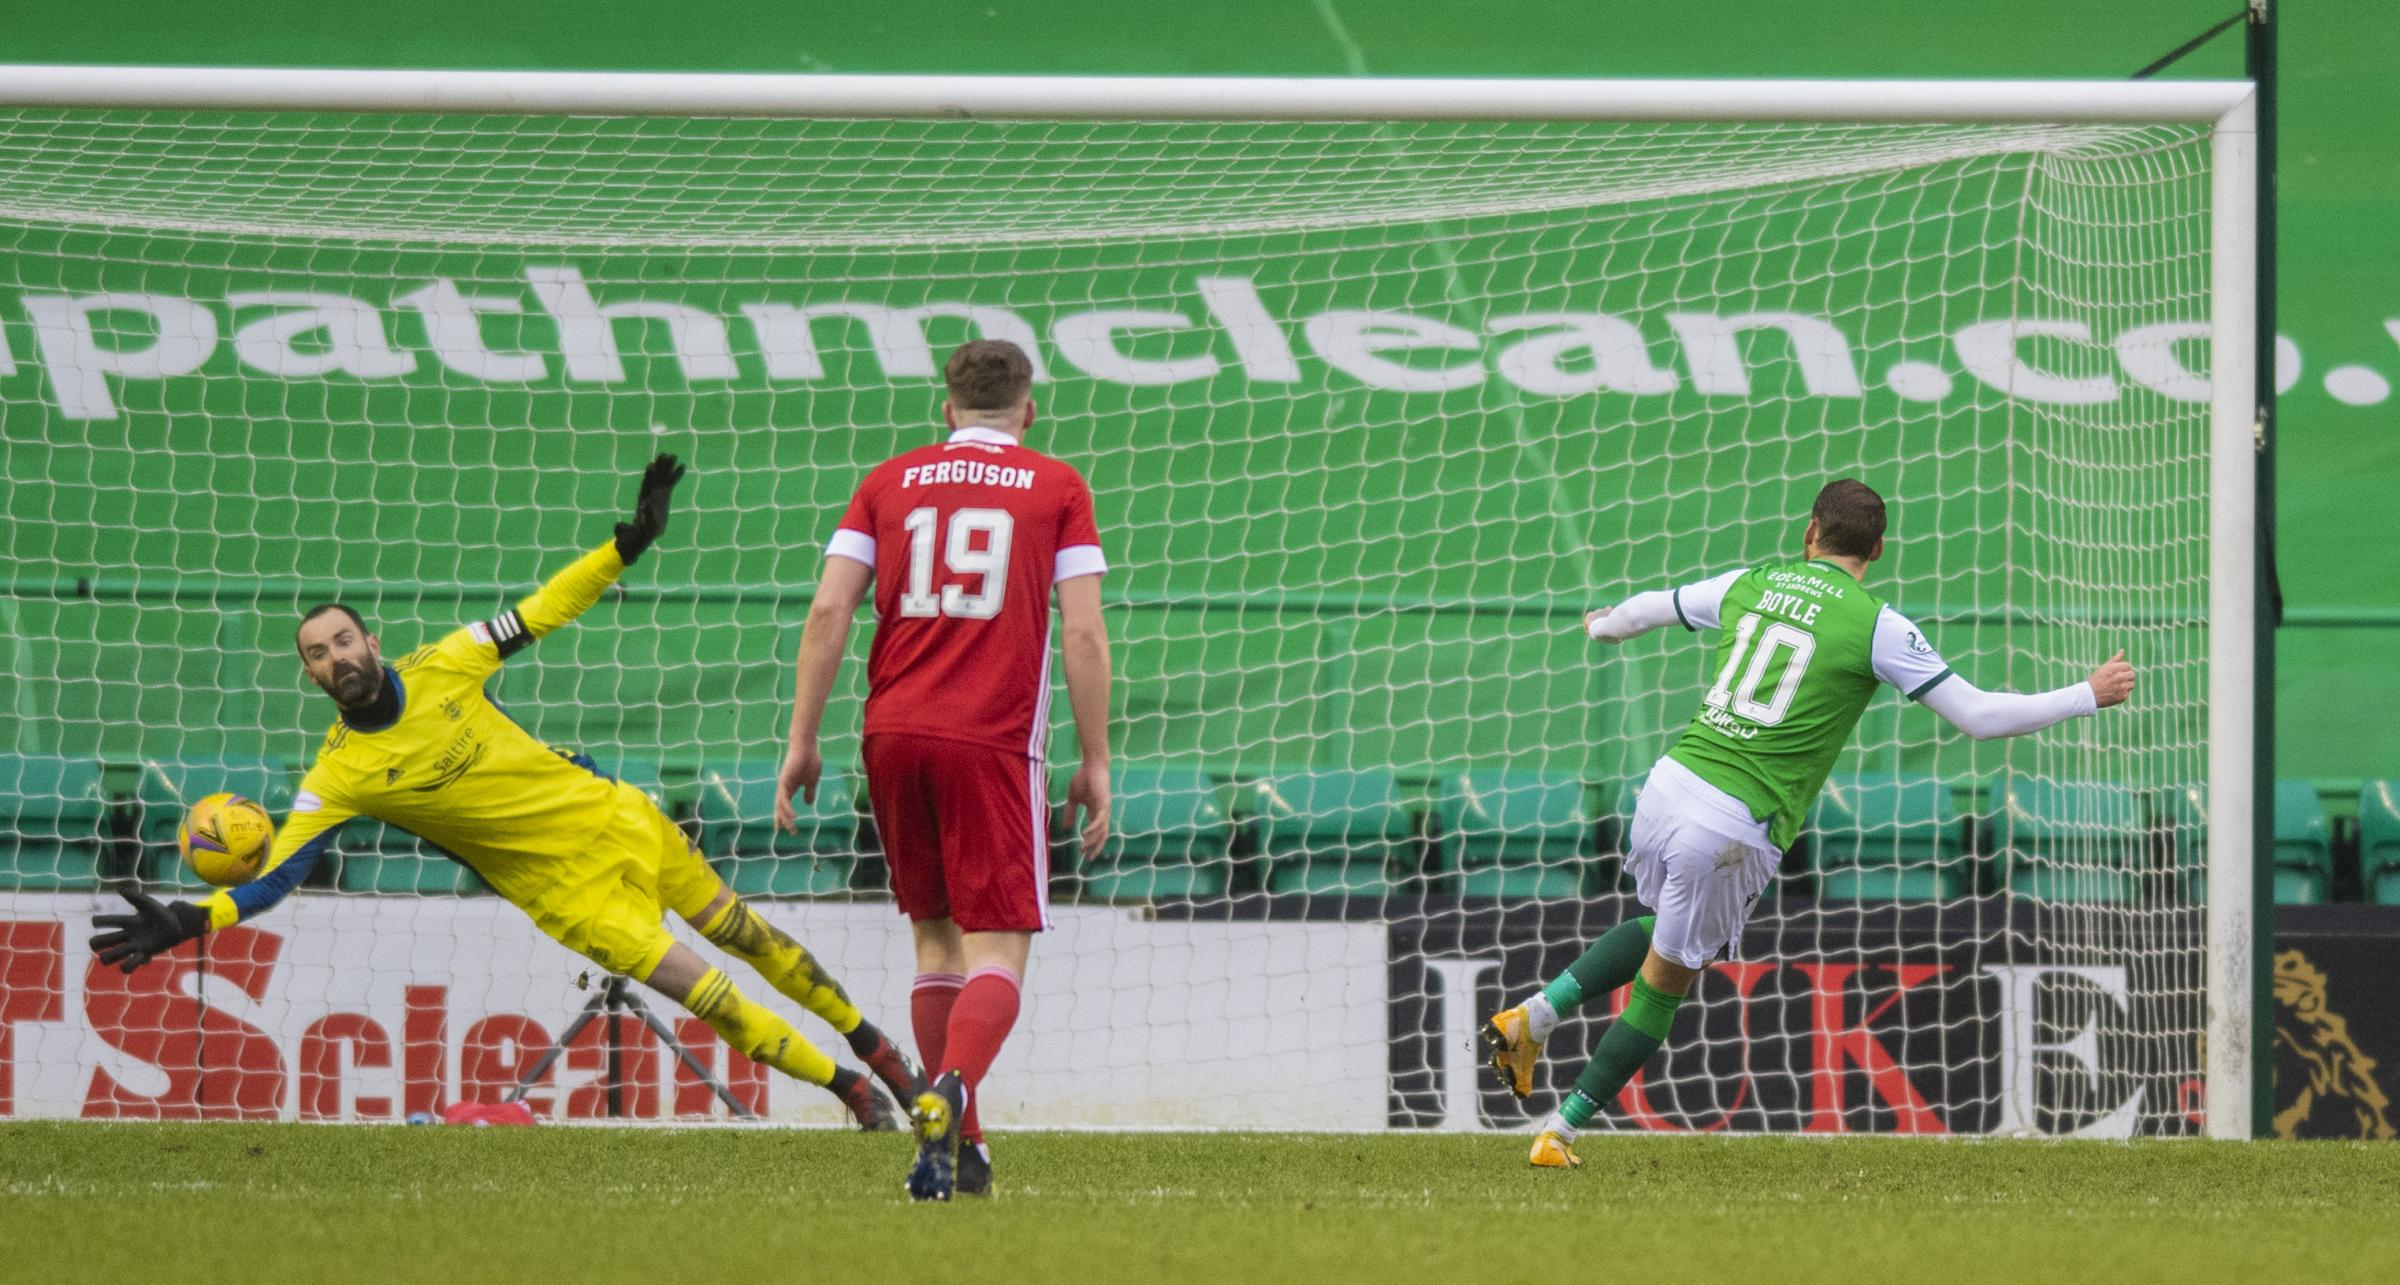 Hibs' Martin Boyle on Aberdeen victory and return to form